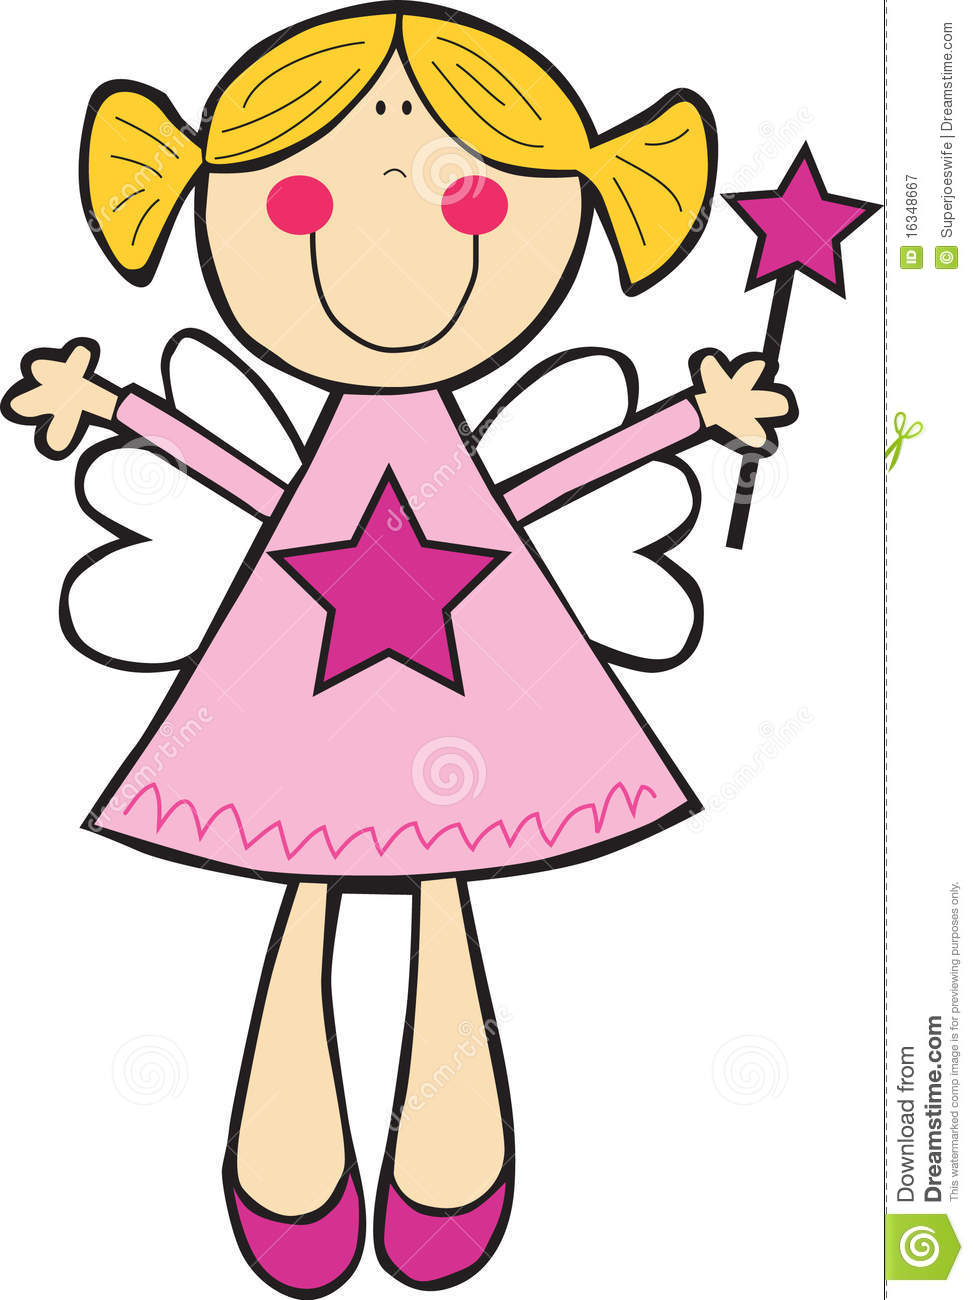 974x1300 Angels Clipart Download. Patchrom Download